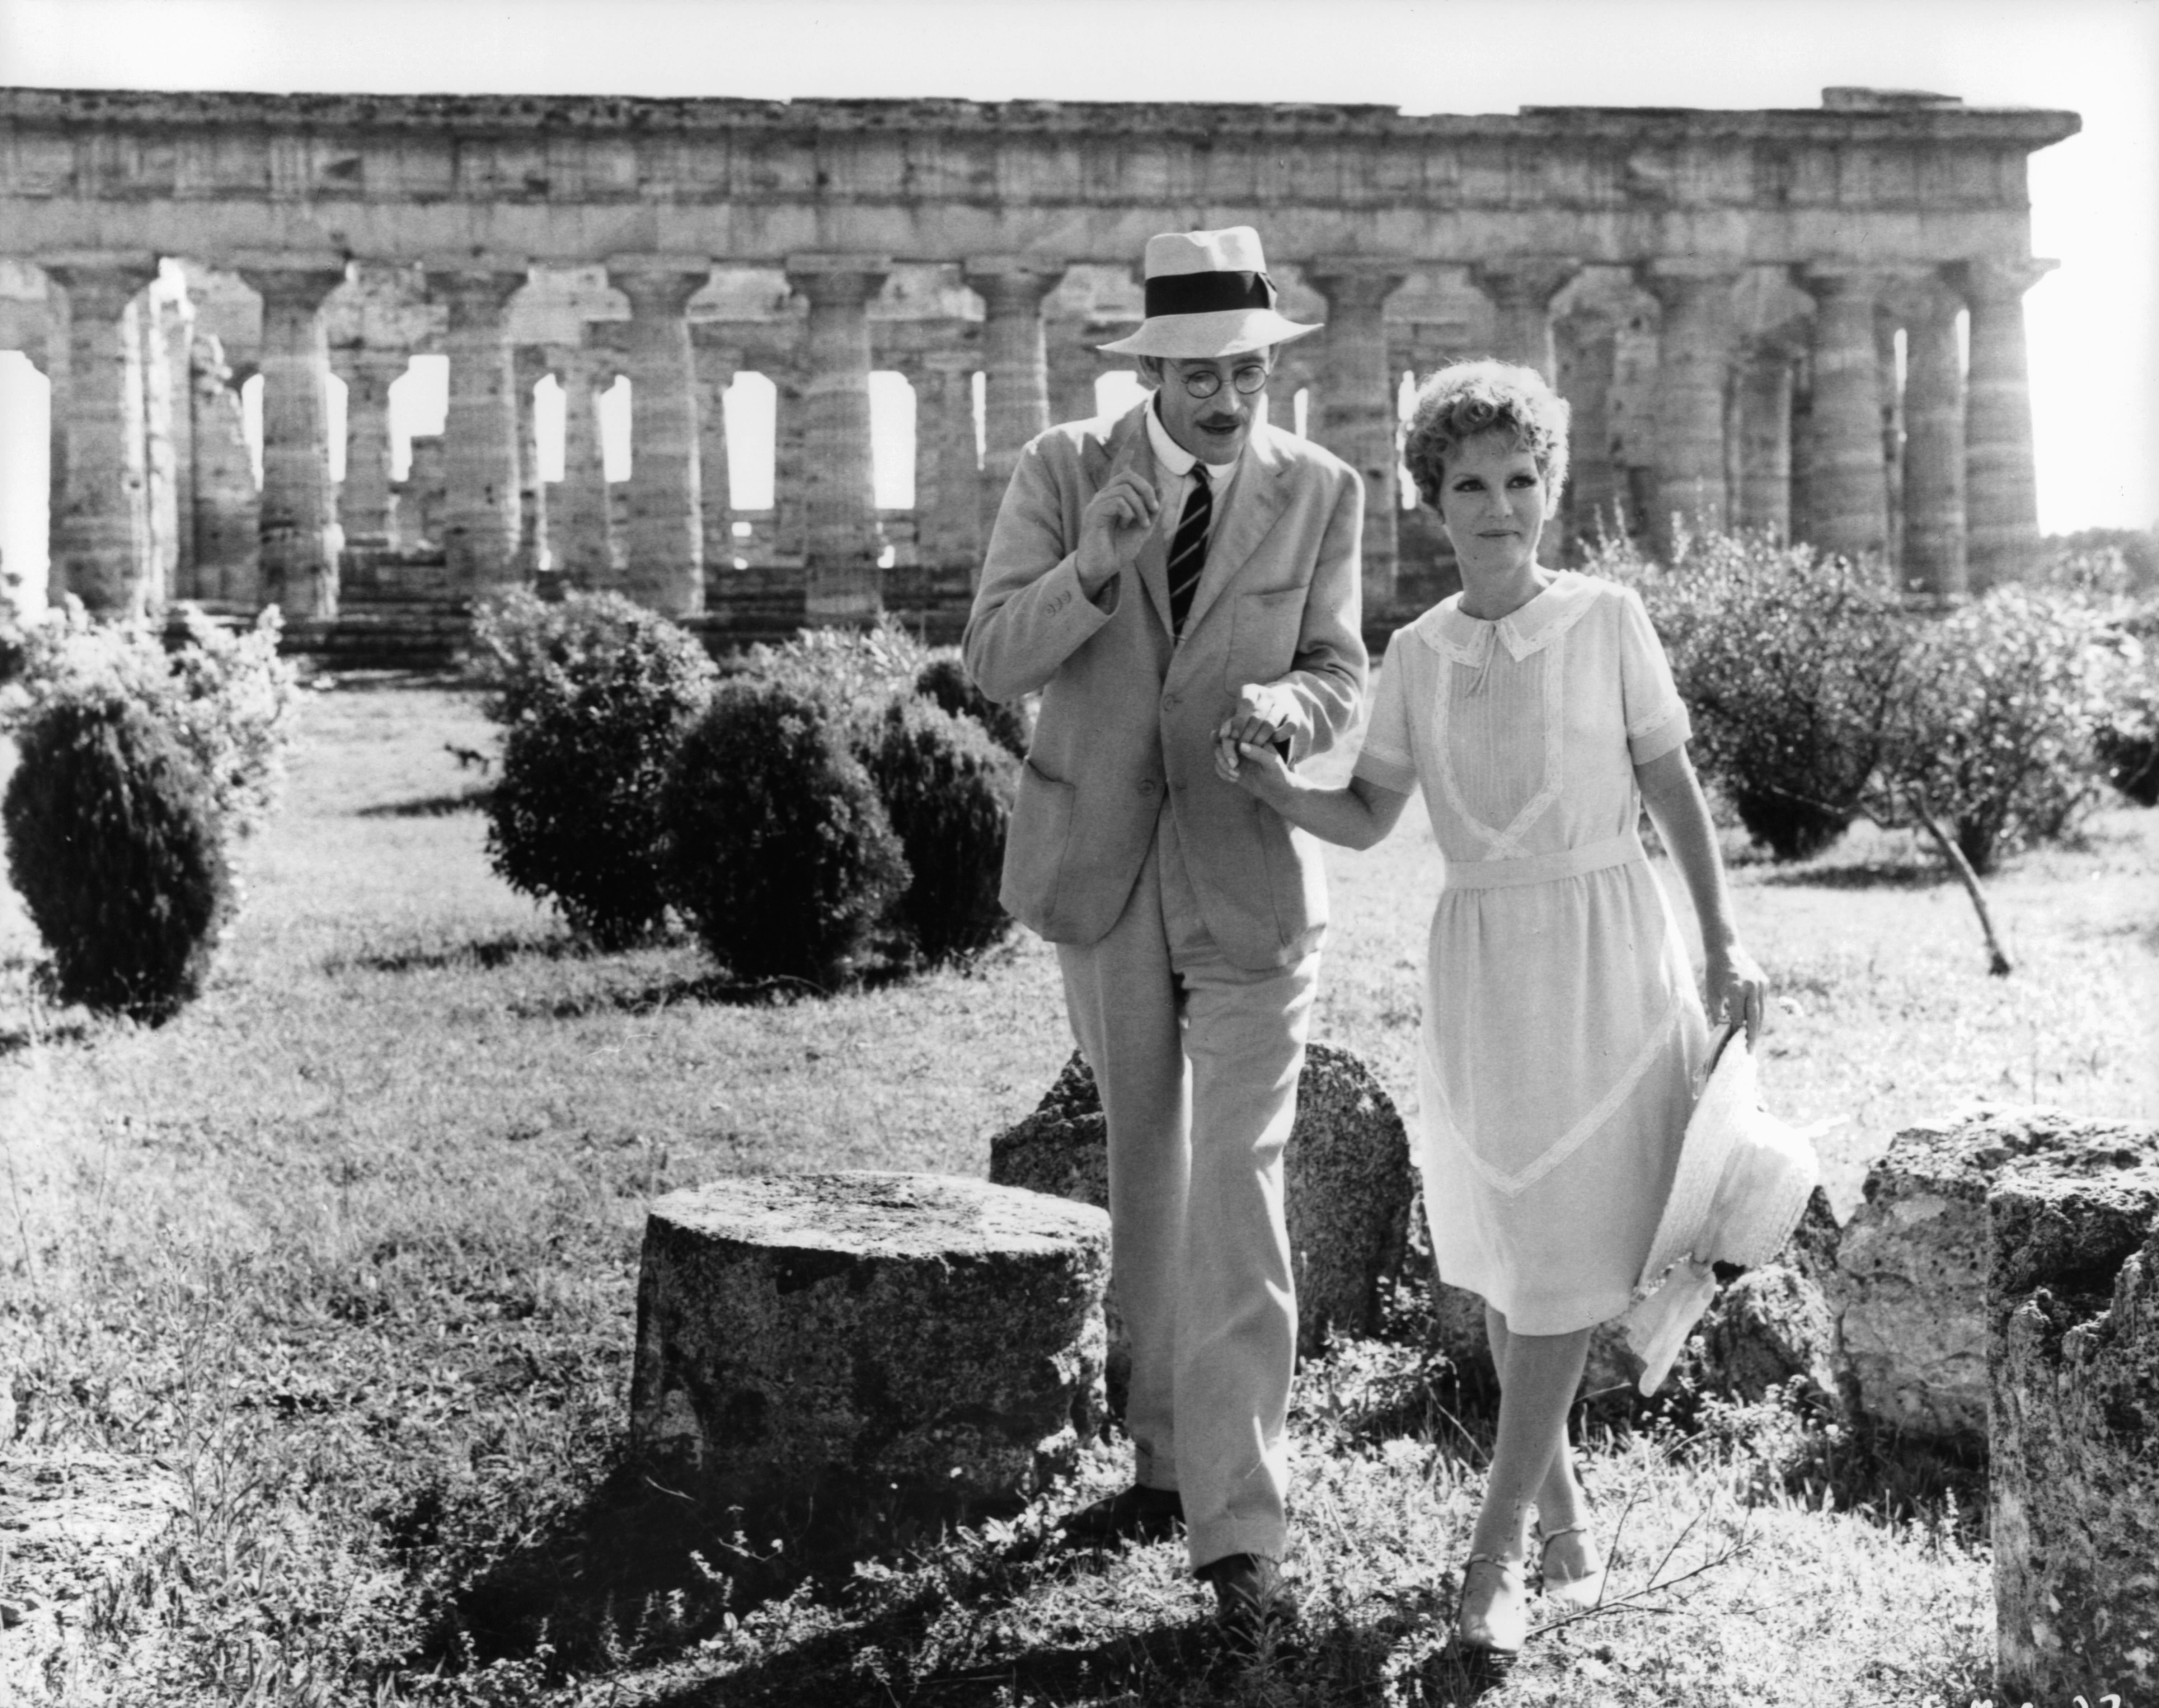 Peter O'Toole And Petula Clark In 'Goodbye Mr. Chips'